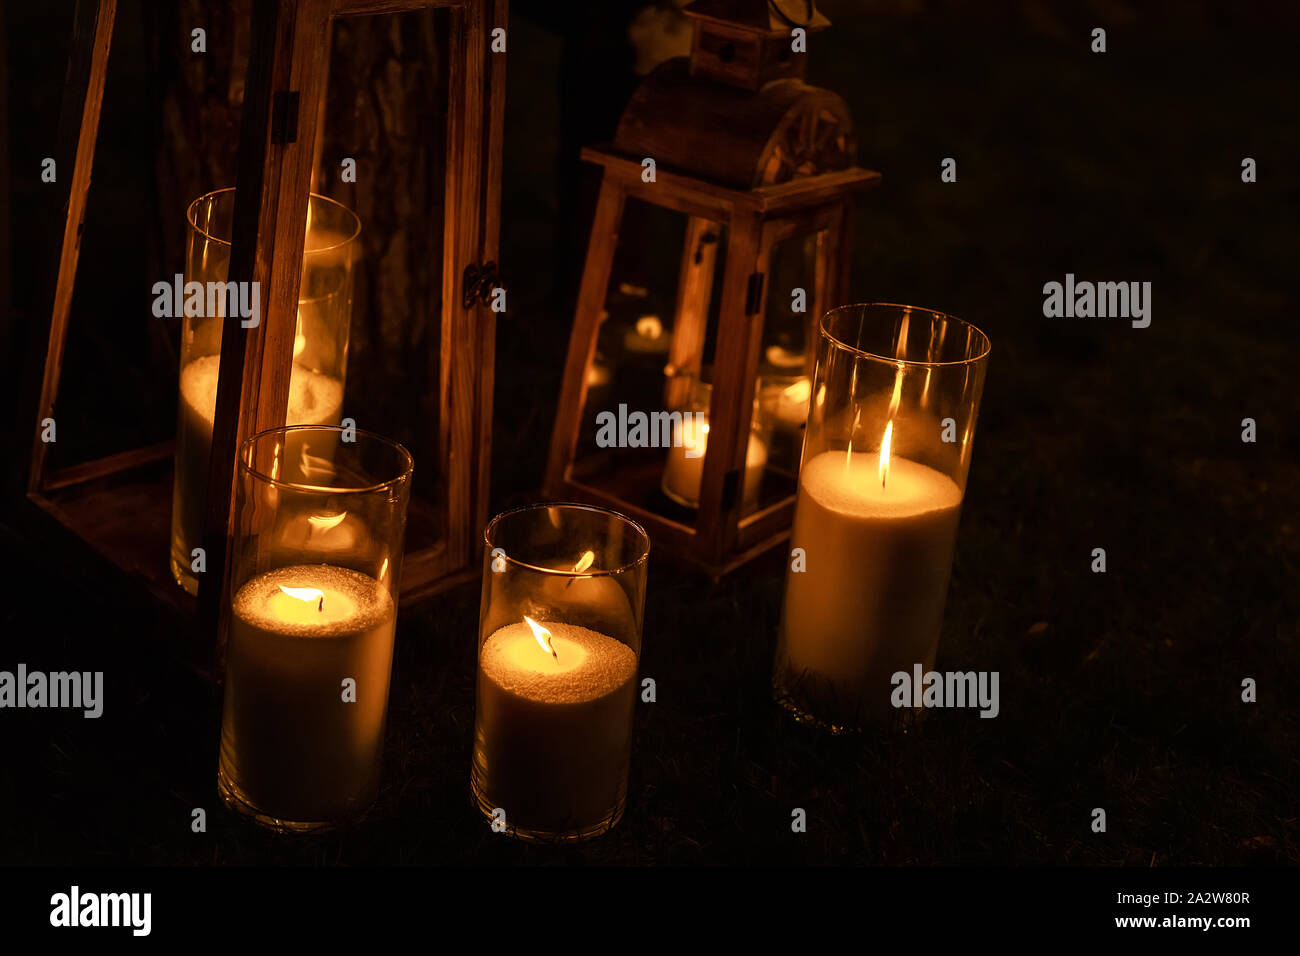 Many Burning Candles In Glass And Wooden Lanterns On Dark Ground Outdoor At Night Romantic Party Area Diwali Fire Holiday Stock Photo Alamy